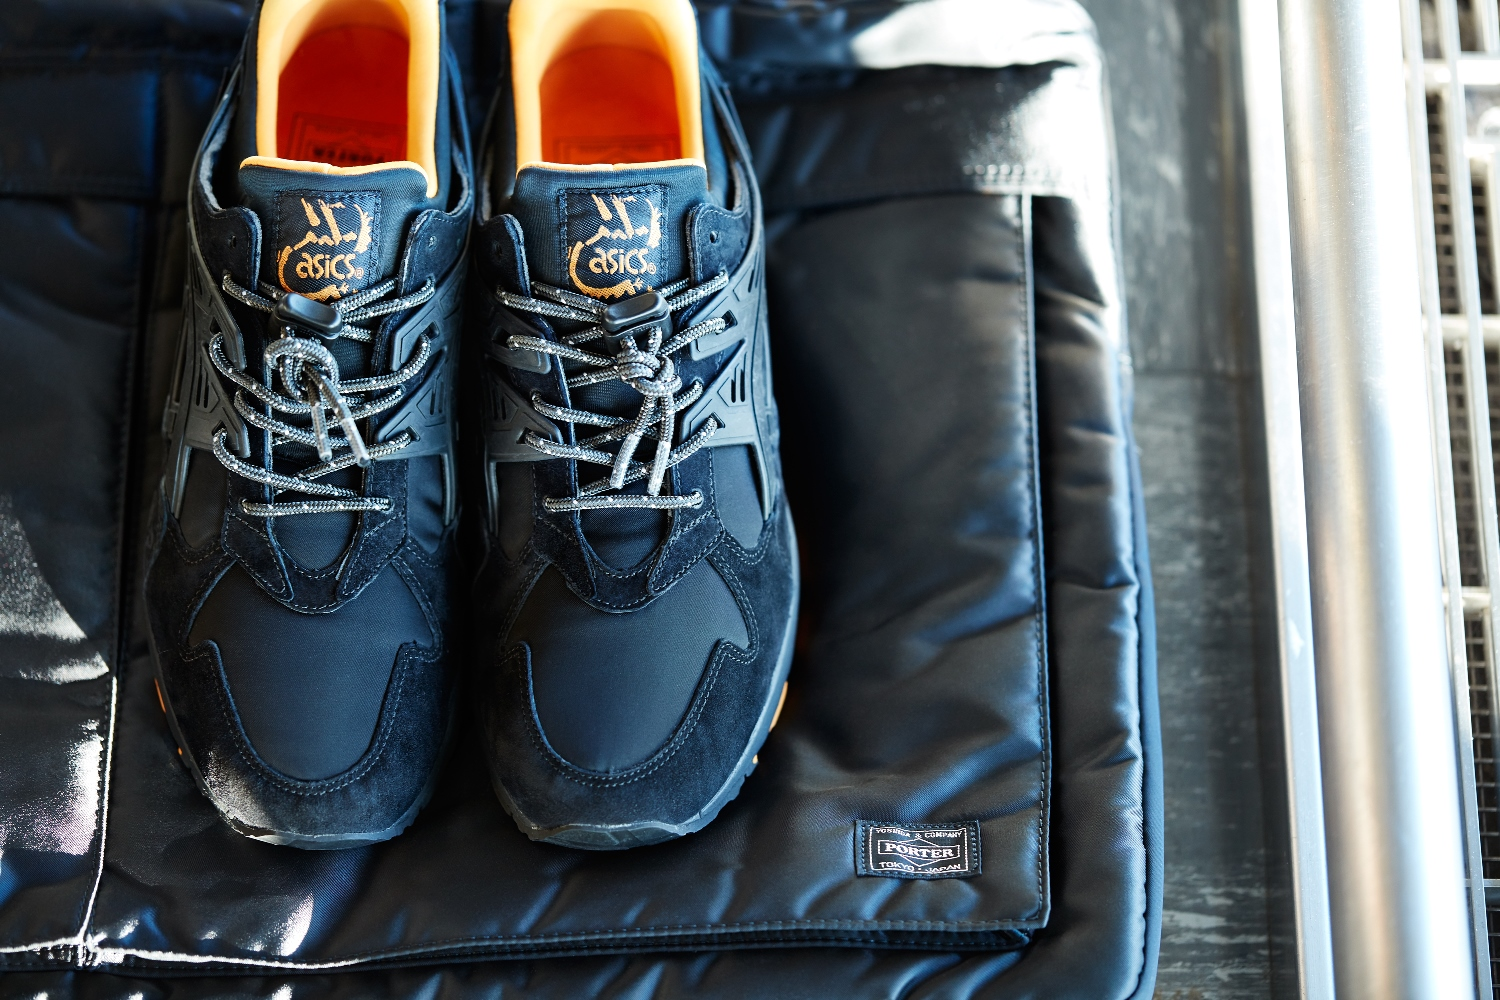 ASICS TigerXPORTER_THAT BLACK NYLON_採用Porter 招牌黑色尼龍結合麂皮製作鞋身。